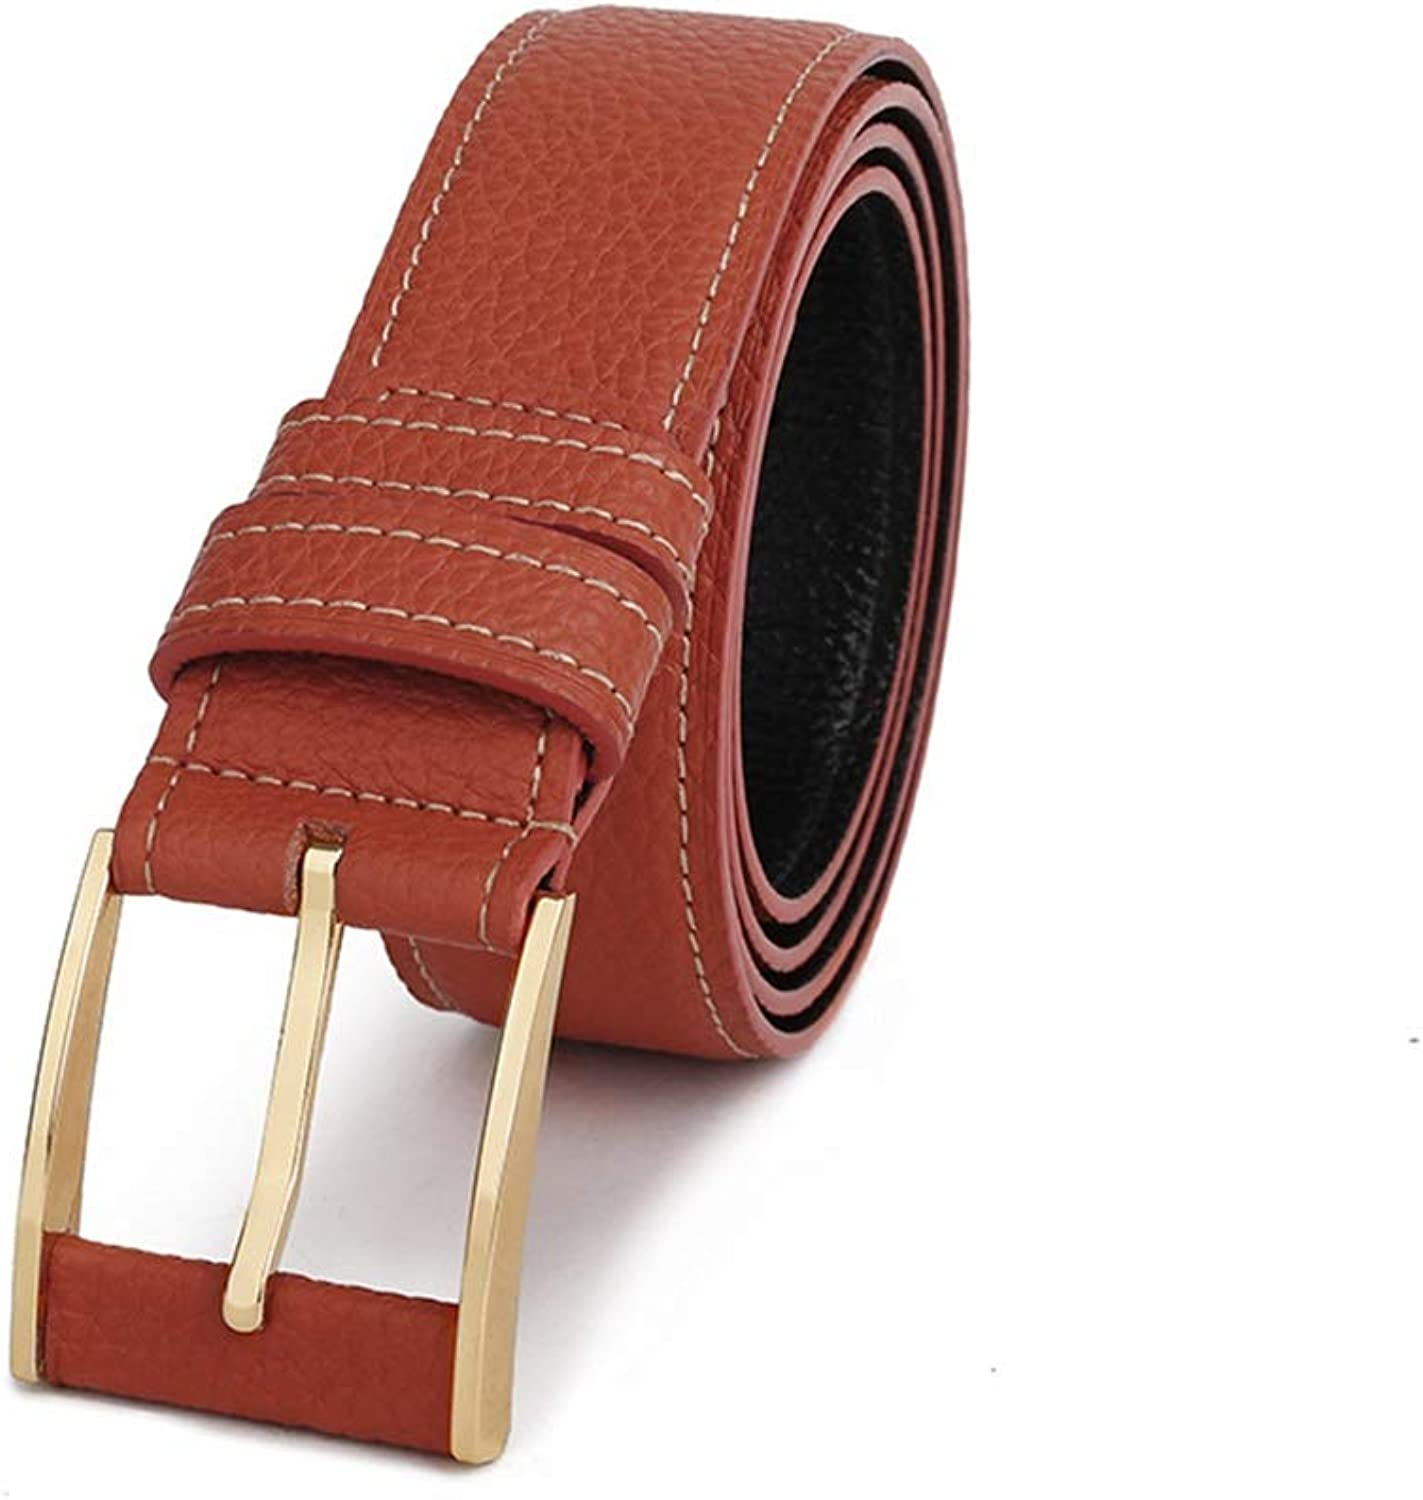 Male Buckle Leather Belt All-Match Genuine Leather Belt Trend, (color   Brown)